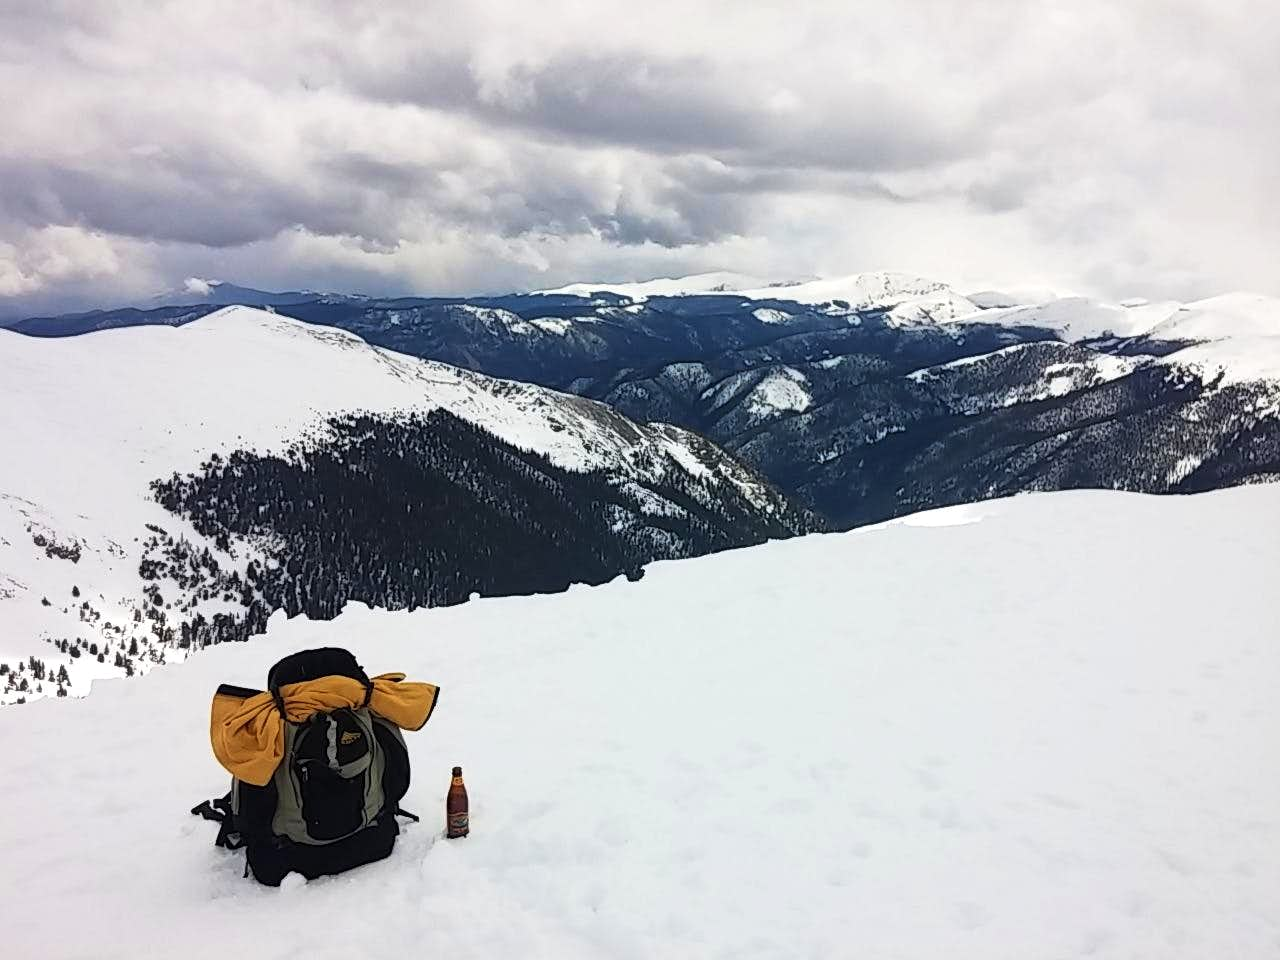 Snowy Spring on Colorado Mines Peak, 2015-05-24